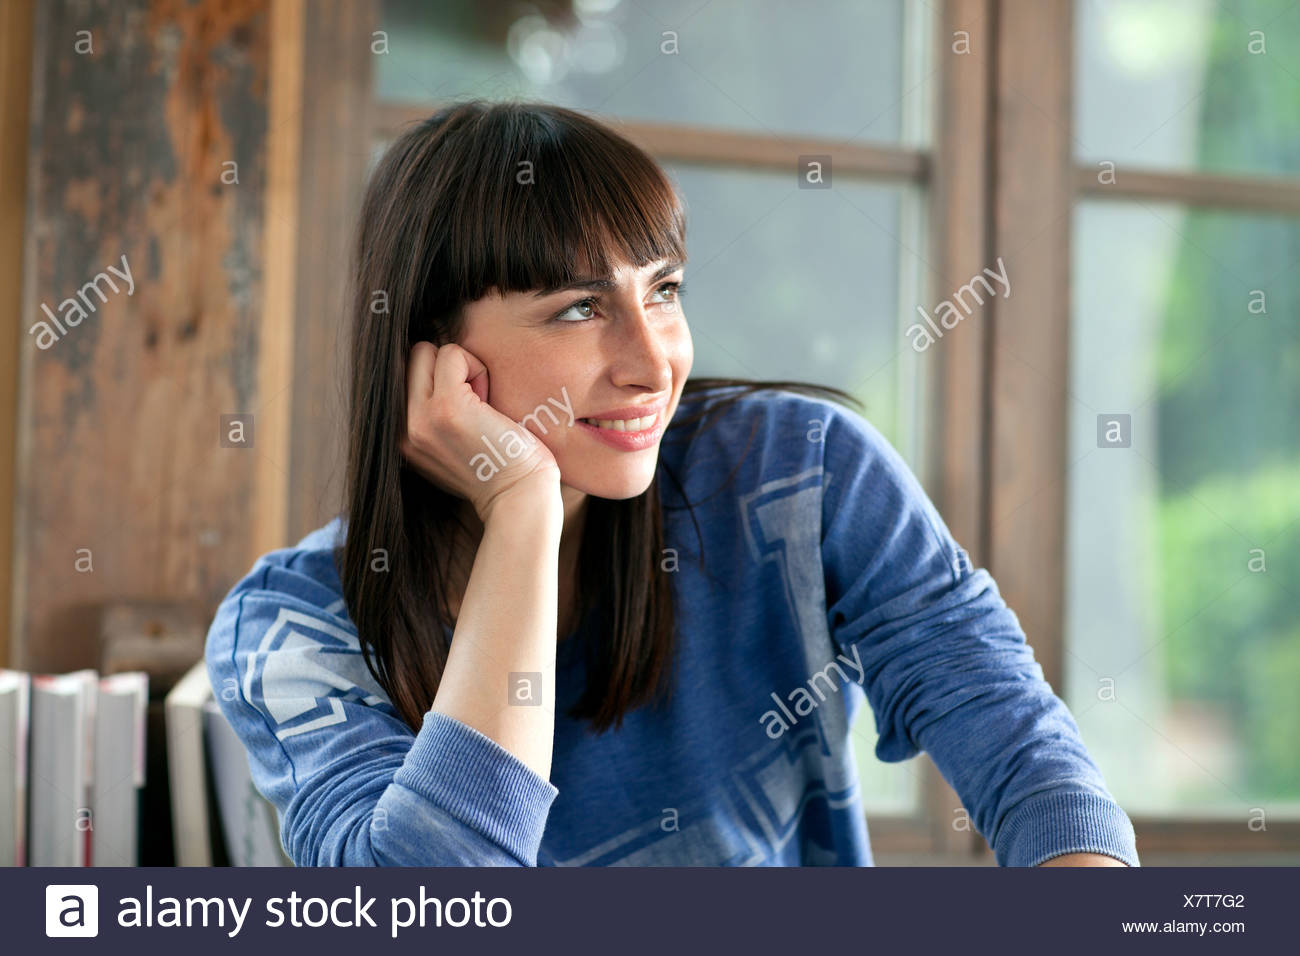 Portrait of woman smiling with hand on chin Photo Stock